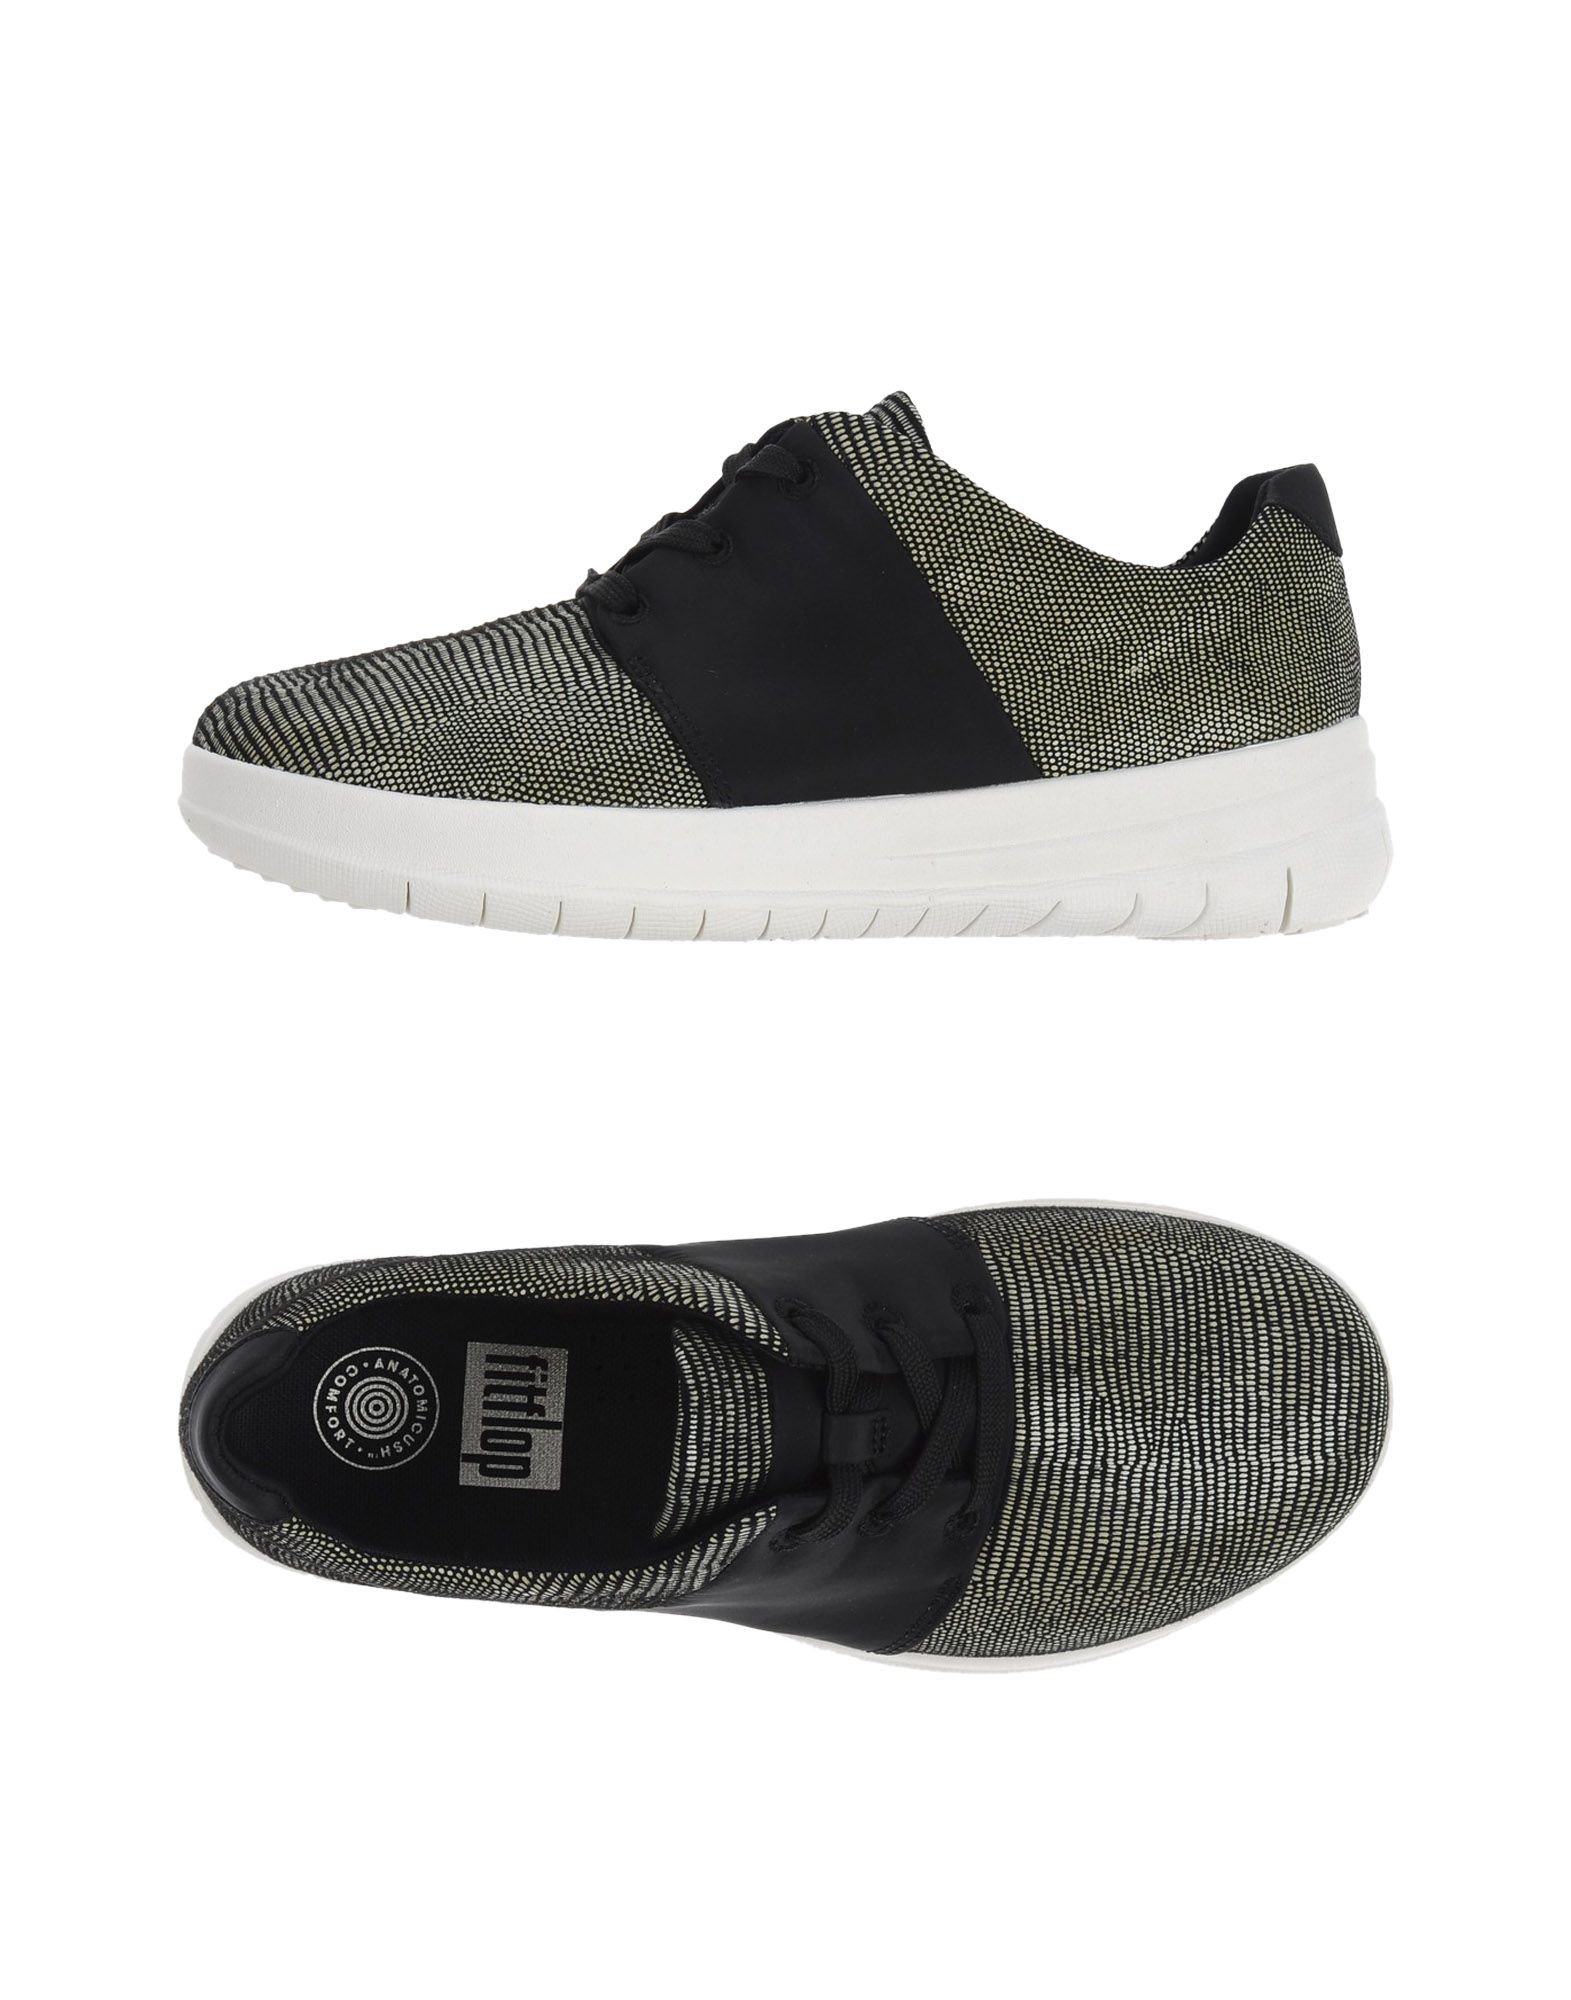 Sneakers Fitflop Femme - Sneakers Fitflop sur